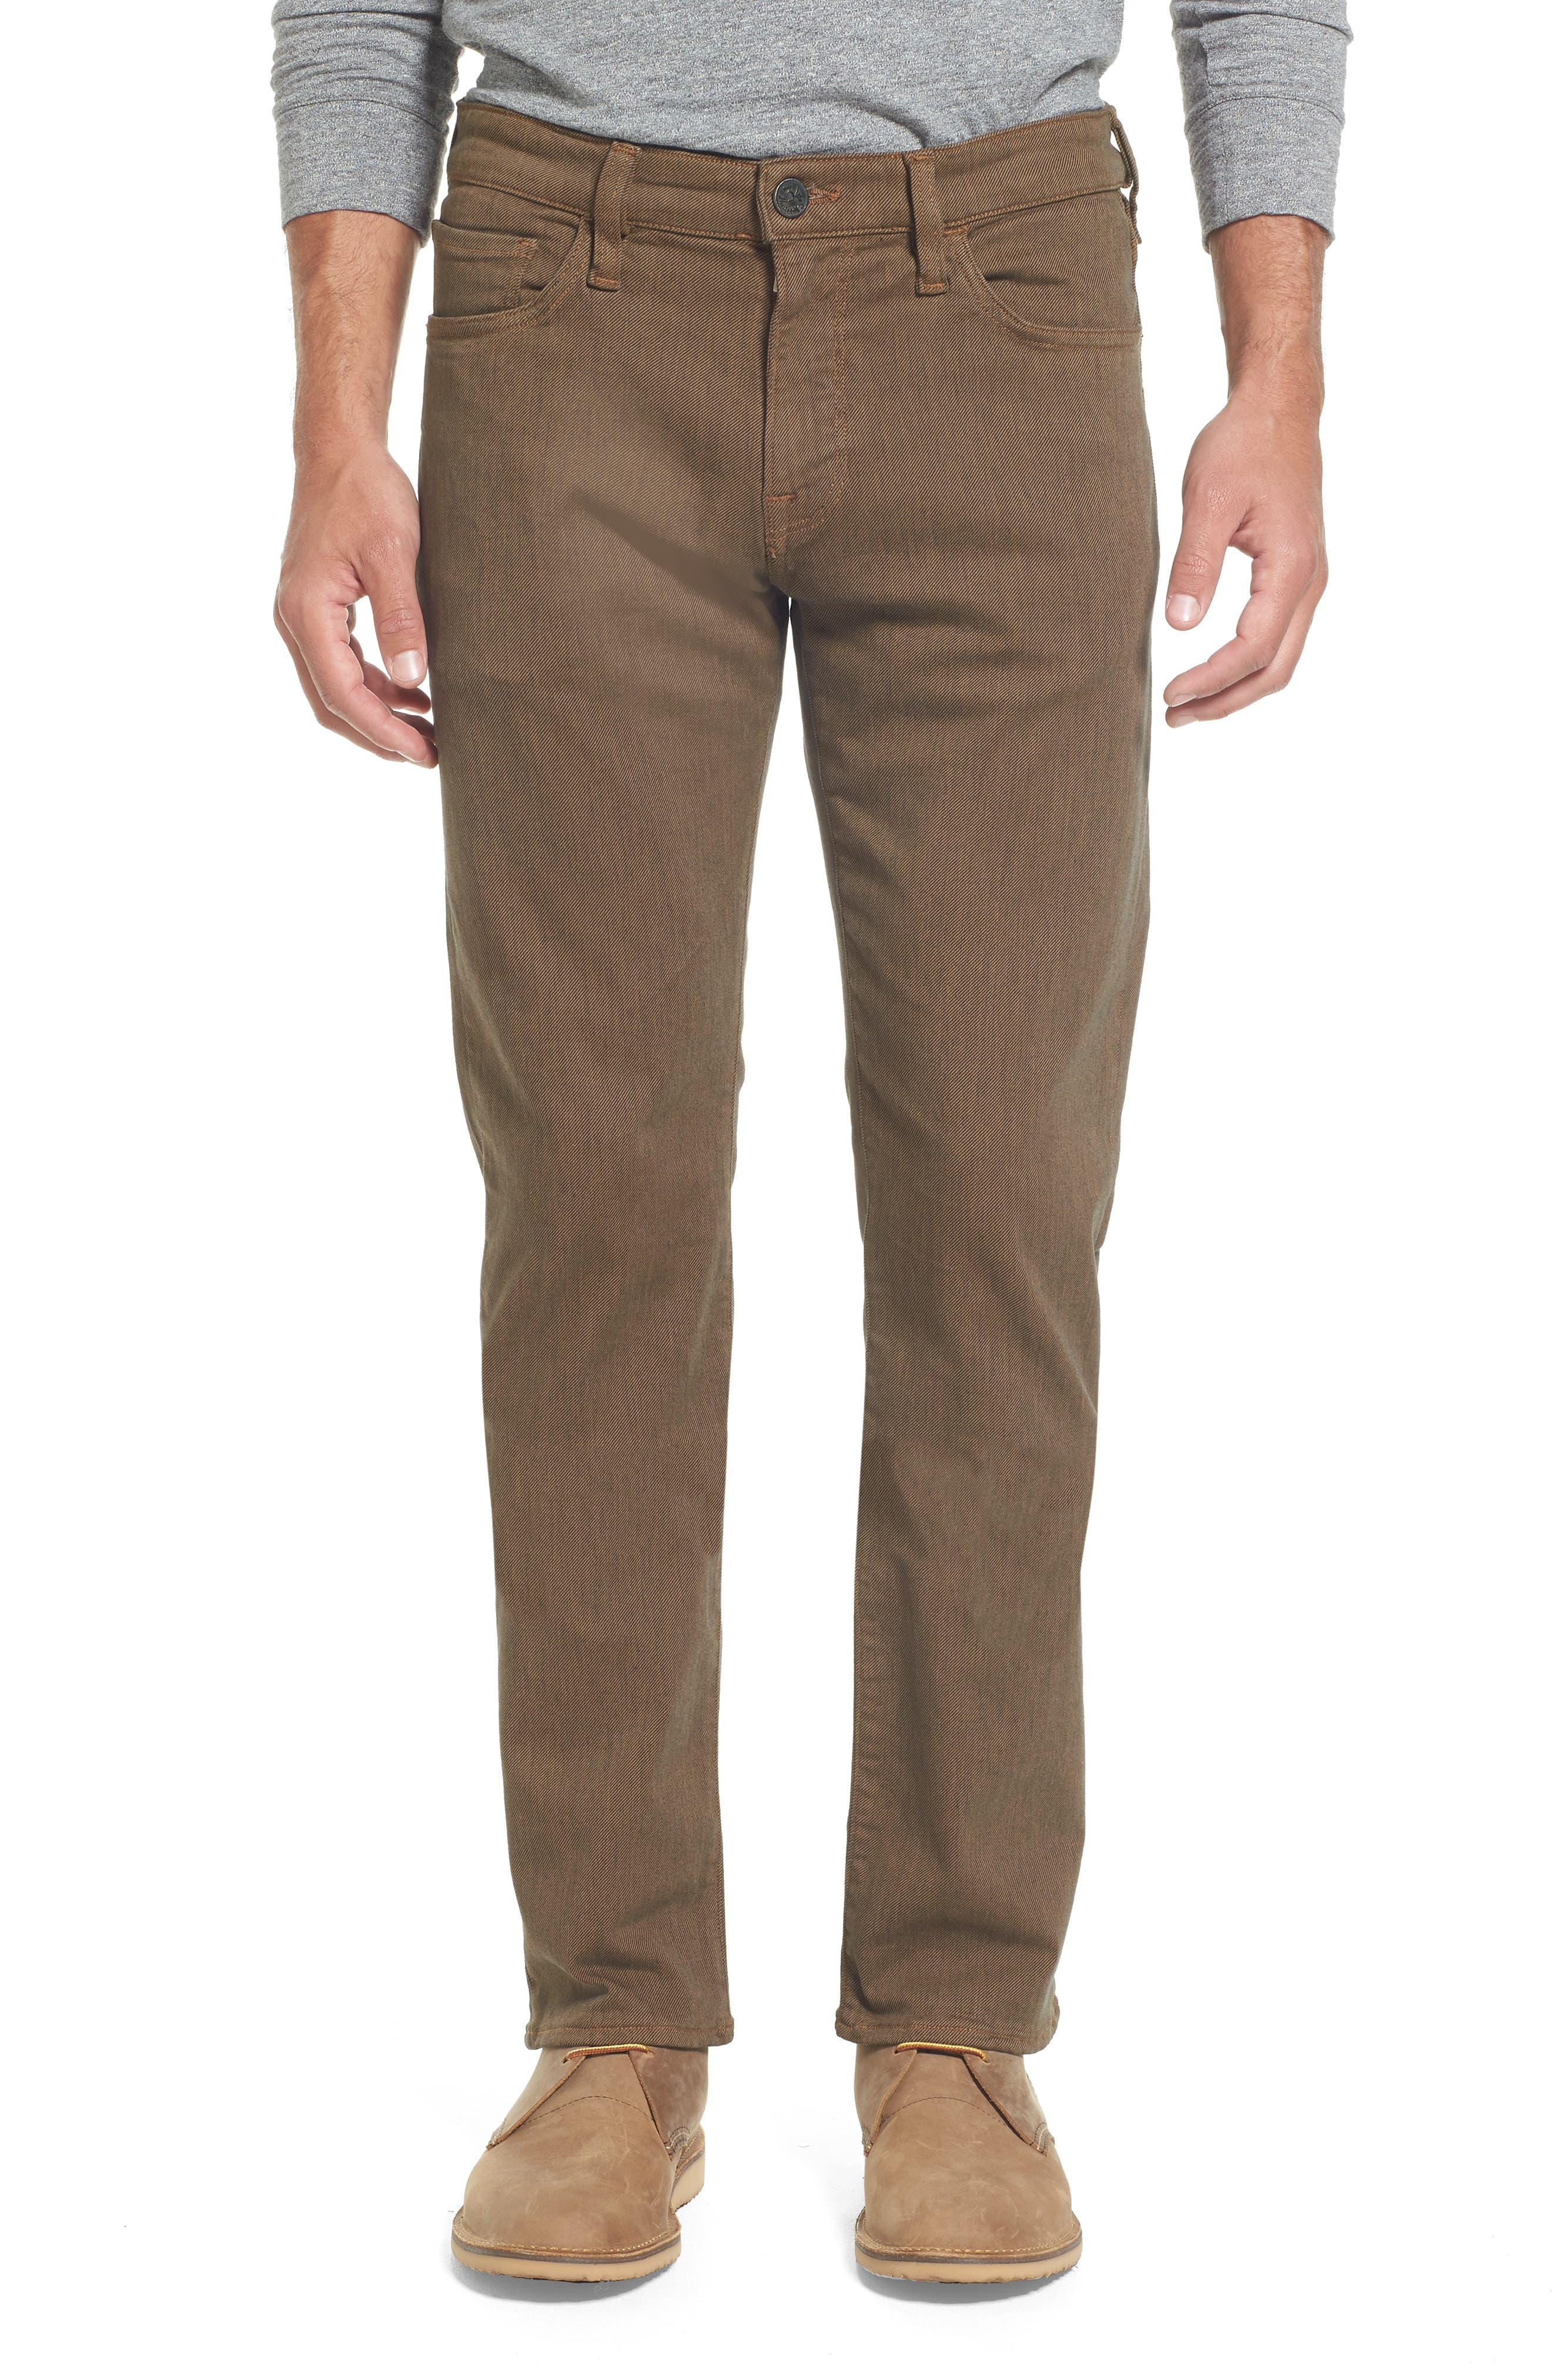 Heritage 34 Courage Straight Leg Jeans,                         Main,                         color, 200